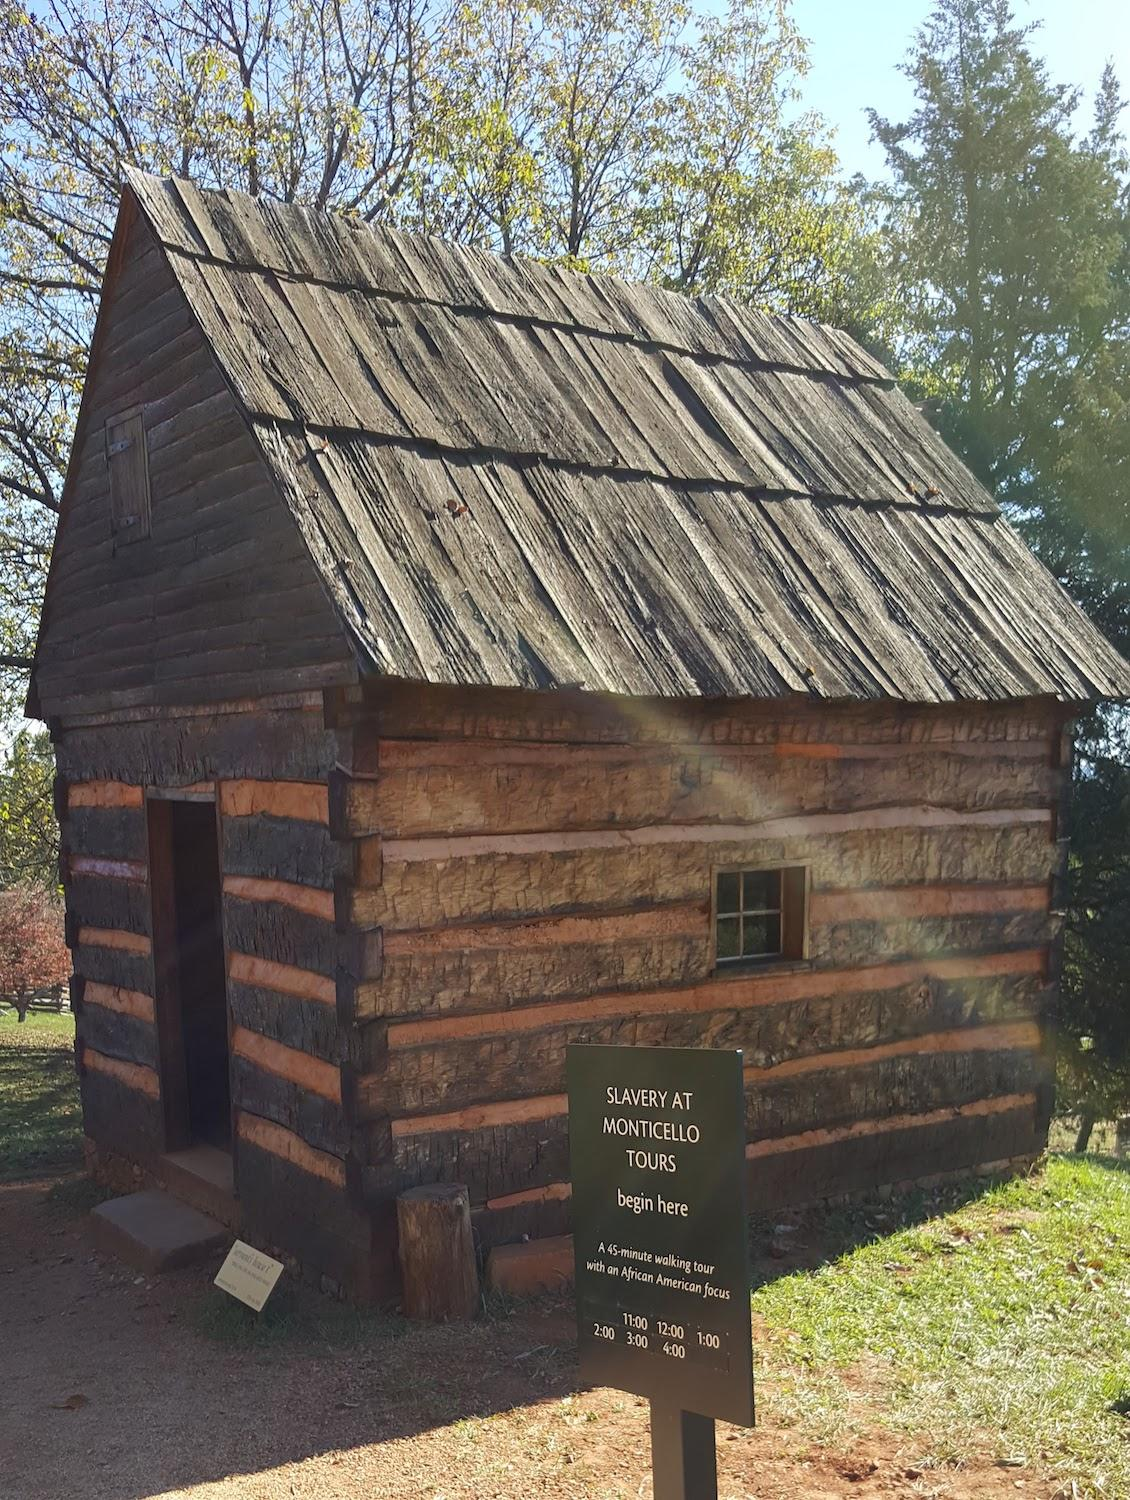 Reconstructed Dwelling at Monticello